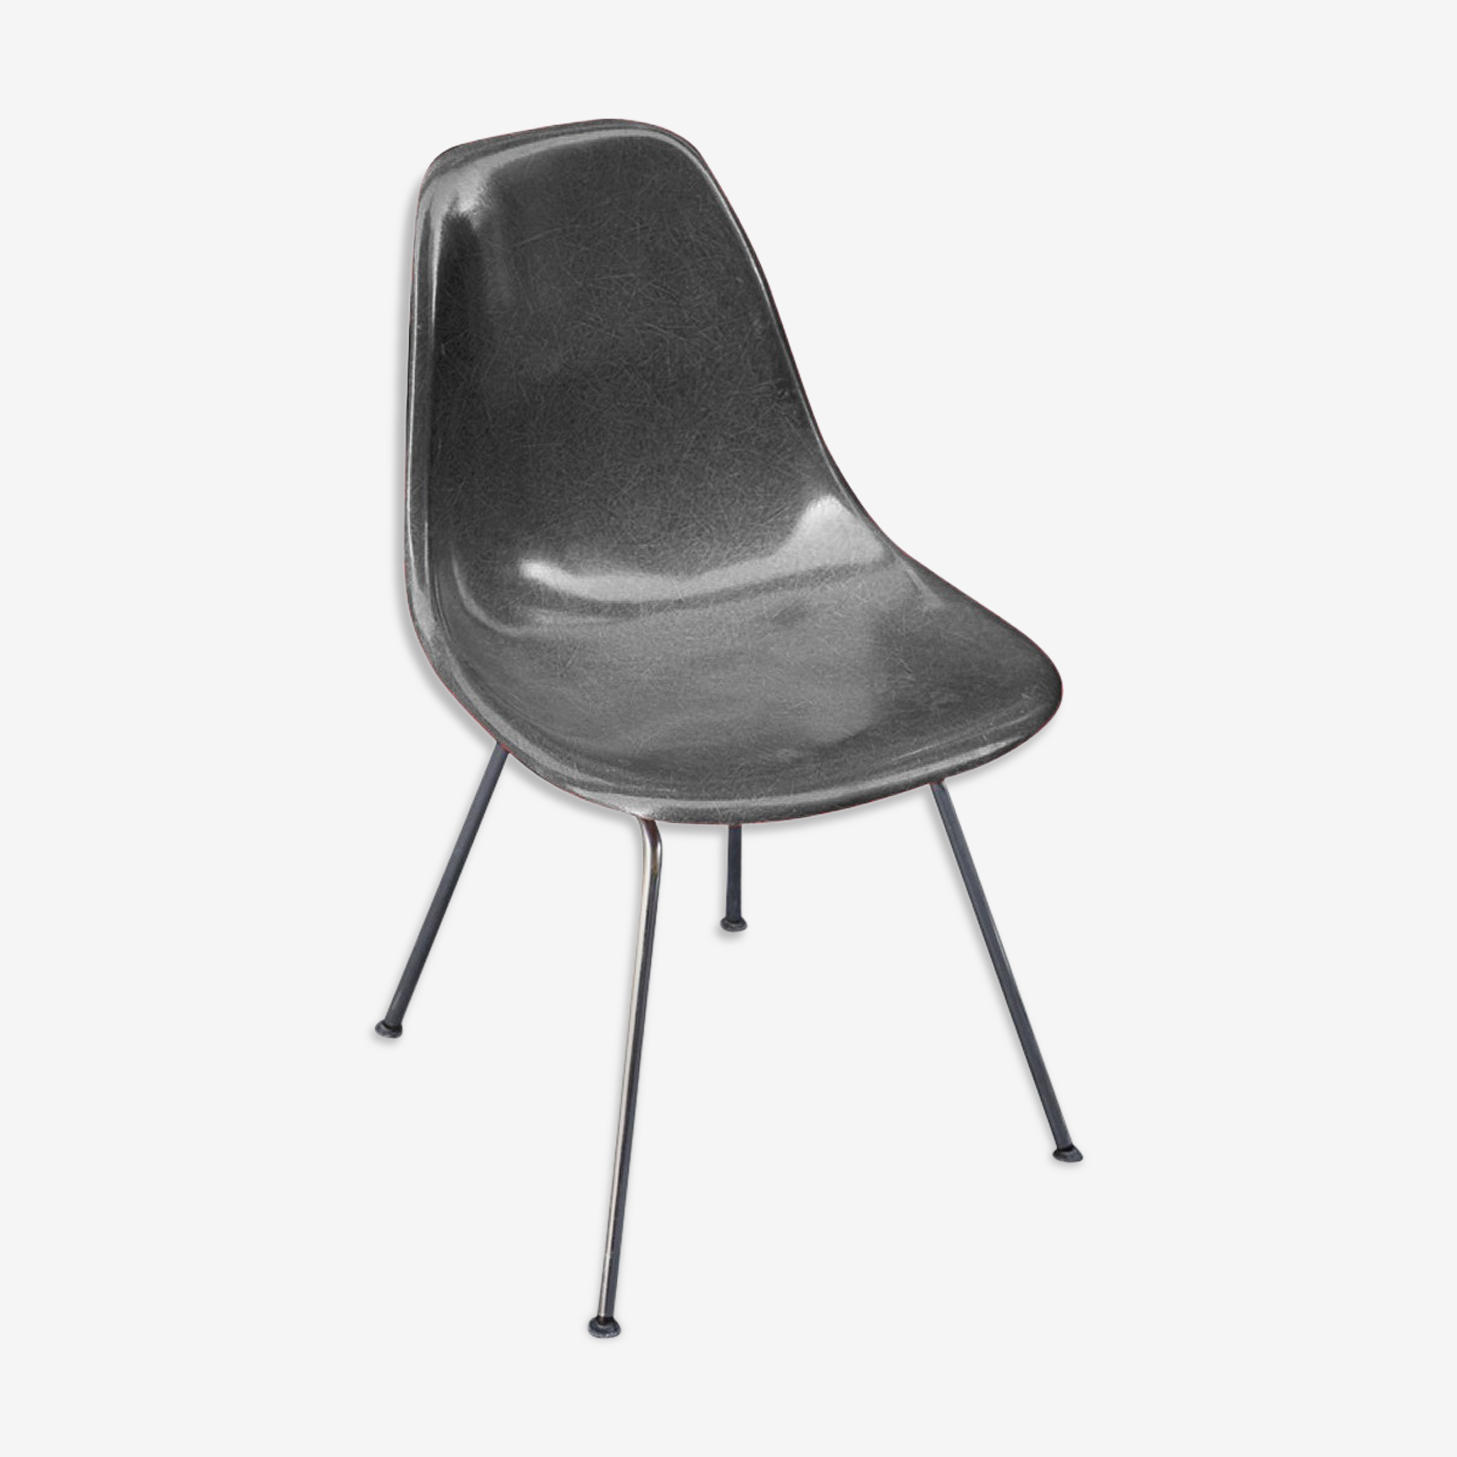 DSX Eames for Herman Miller chairs, 1950